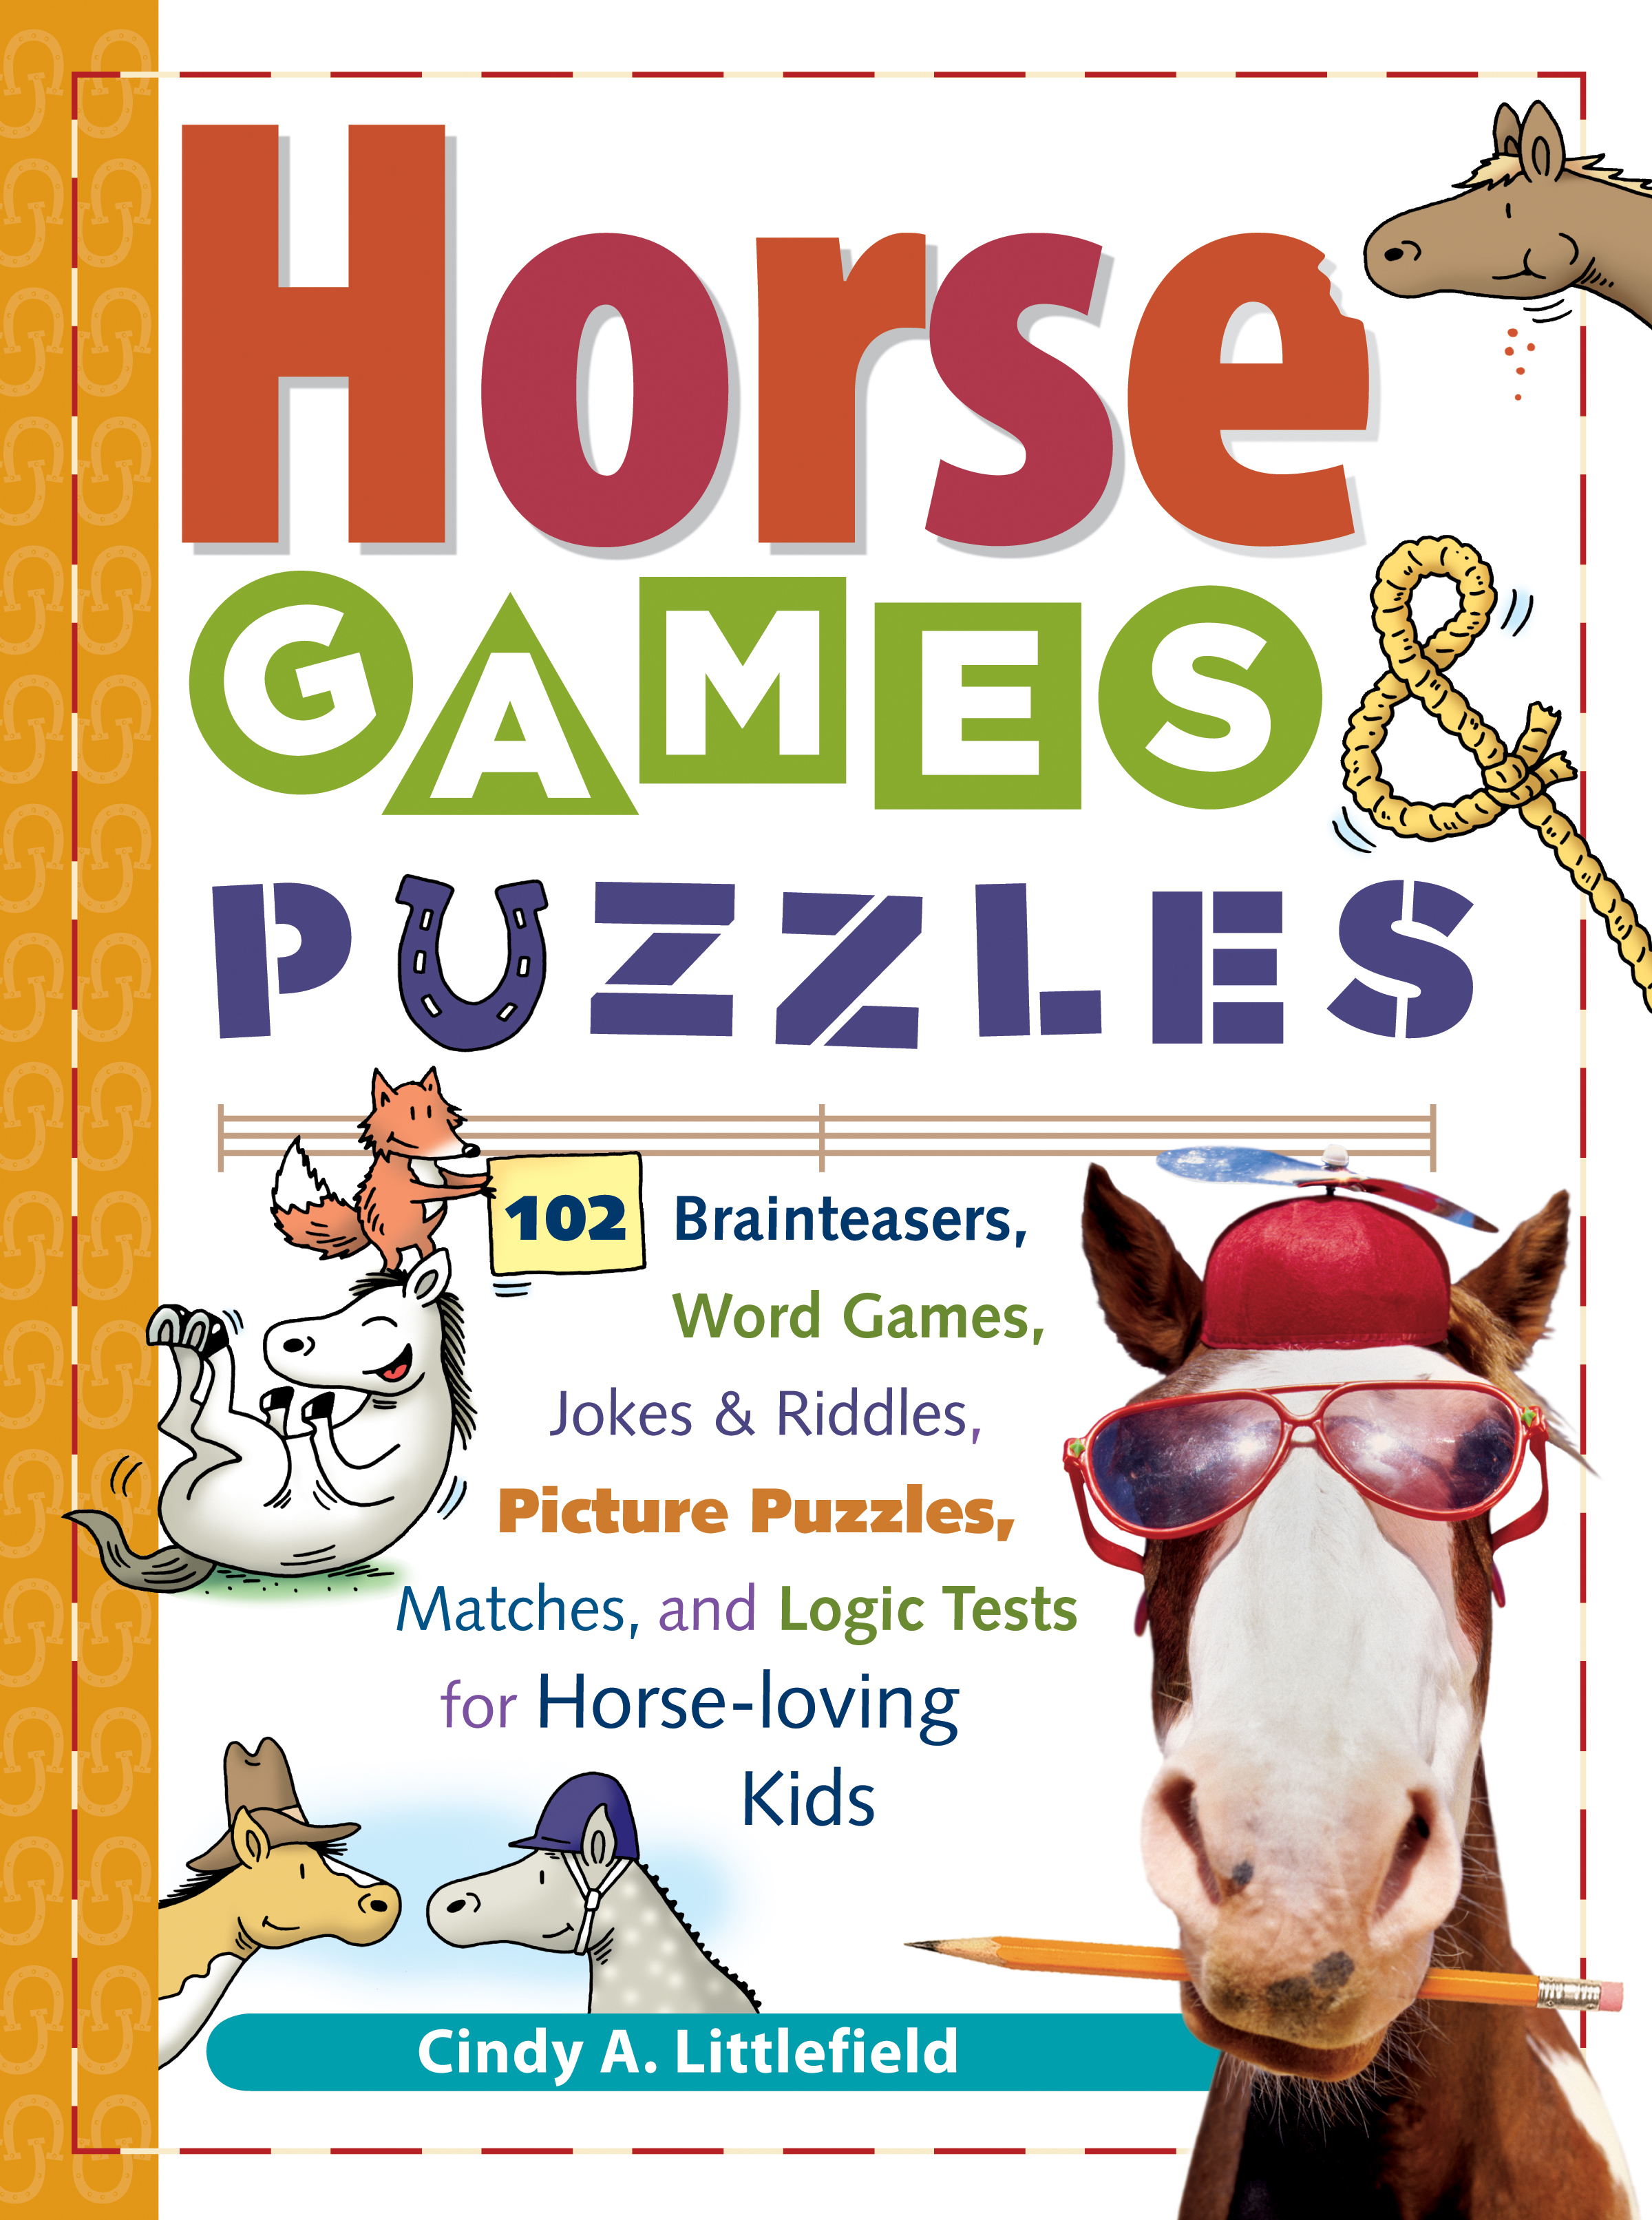 Horse Games & Puzzles 102 Brainteasers, Word Games, Jokes & Riddles, Picture Puzzlers, Matches & Logic Tests for Horse-Loving Kids - Cindy A. Littlefield